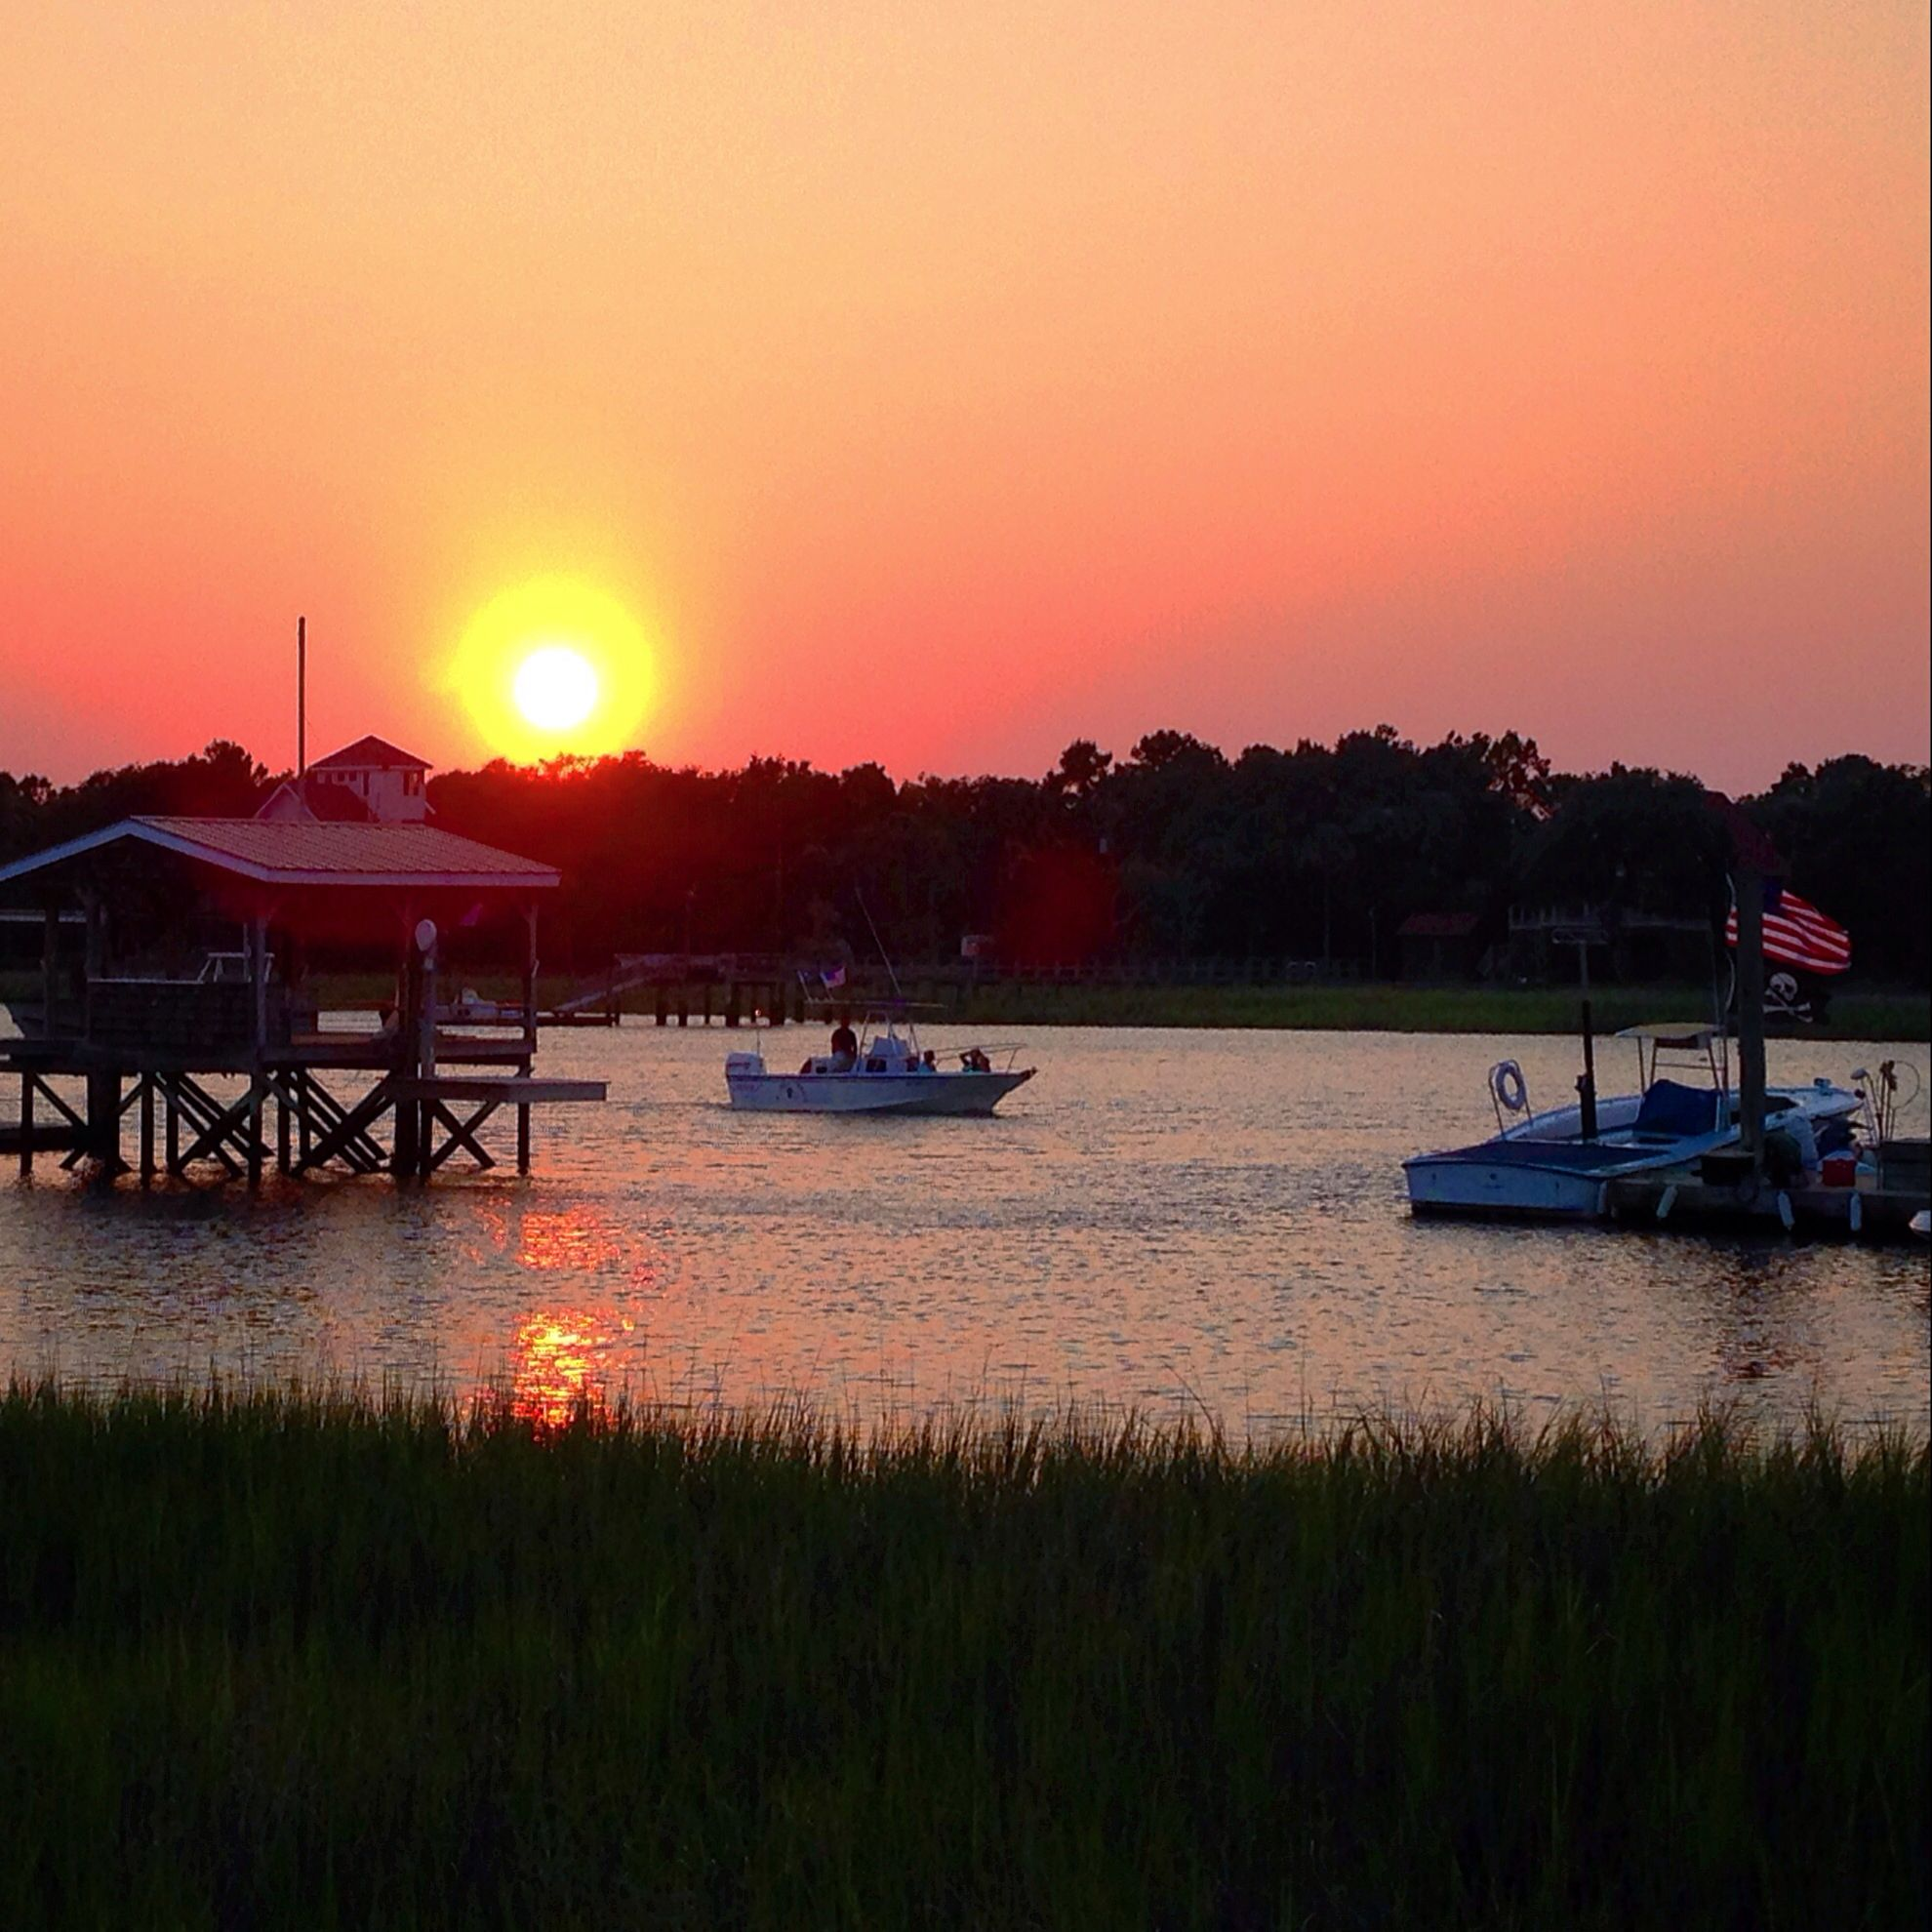 Beach House Isle Of Palms: Isle Of Palms, You Get More Beautiful Every Day. #marina